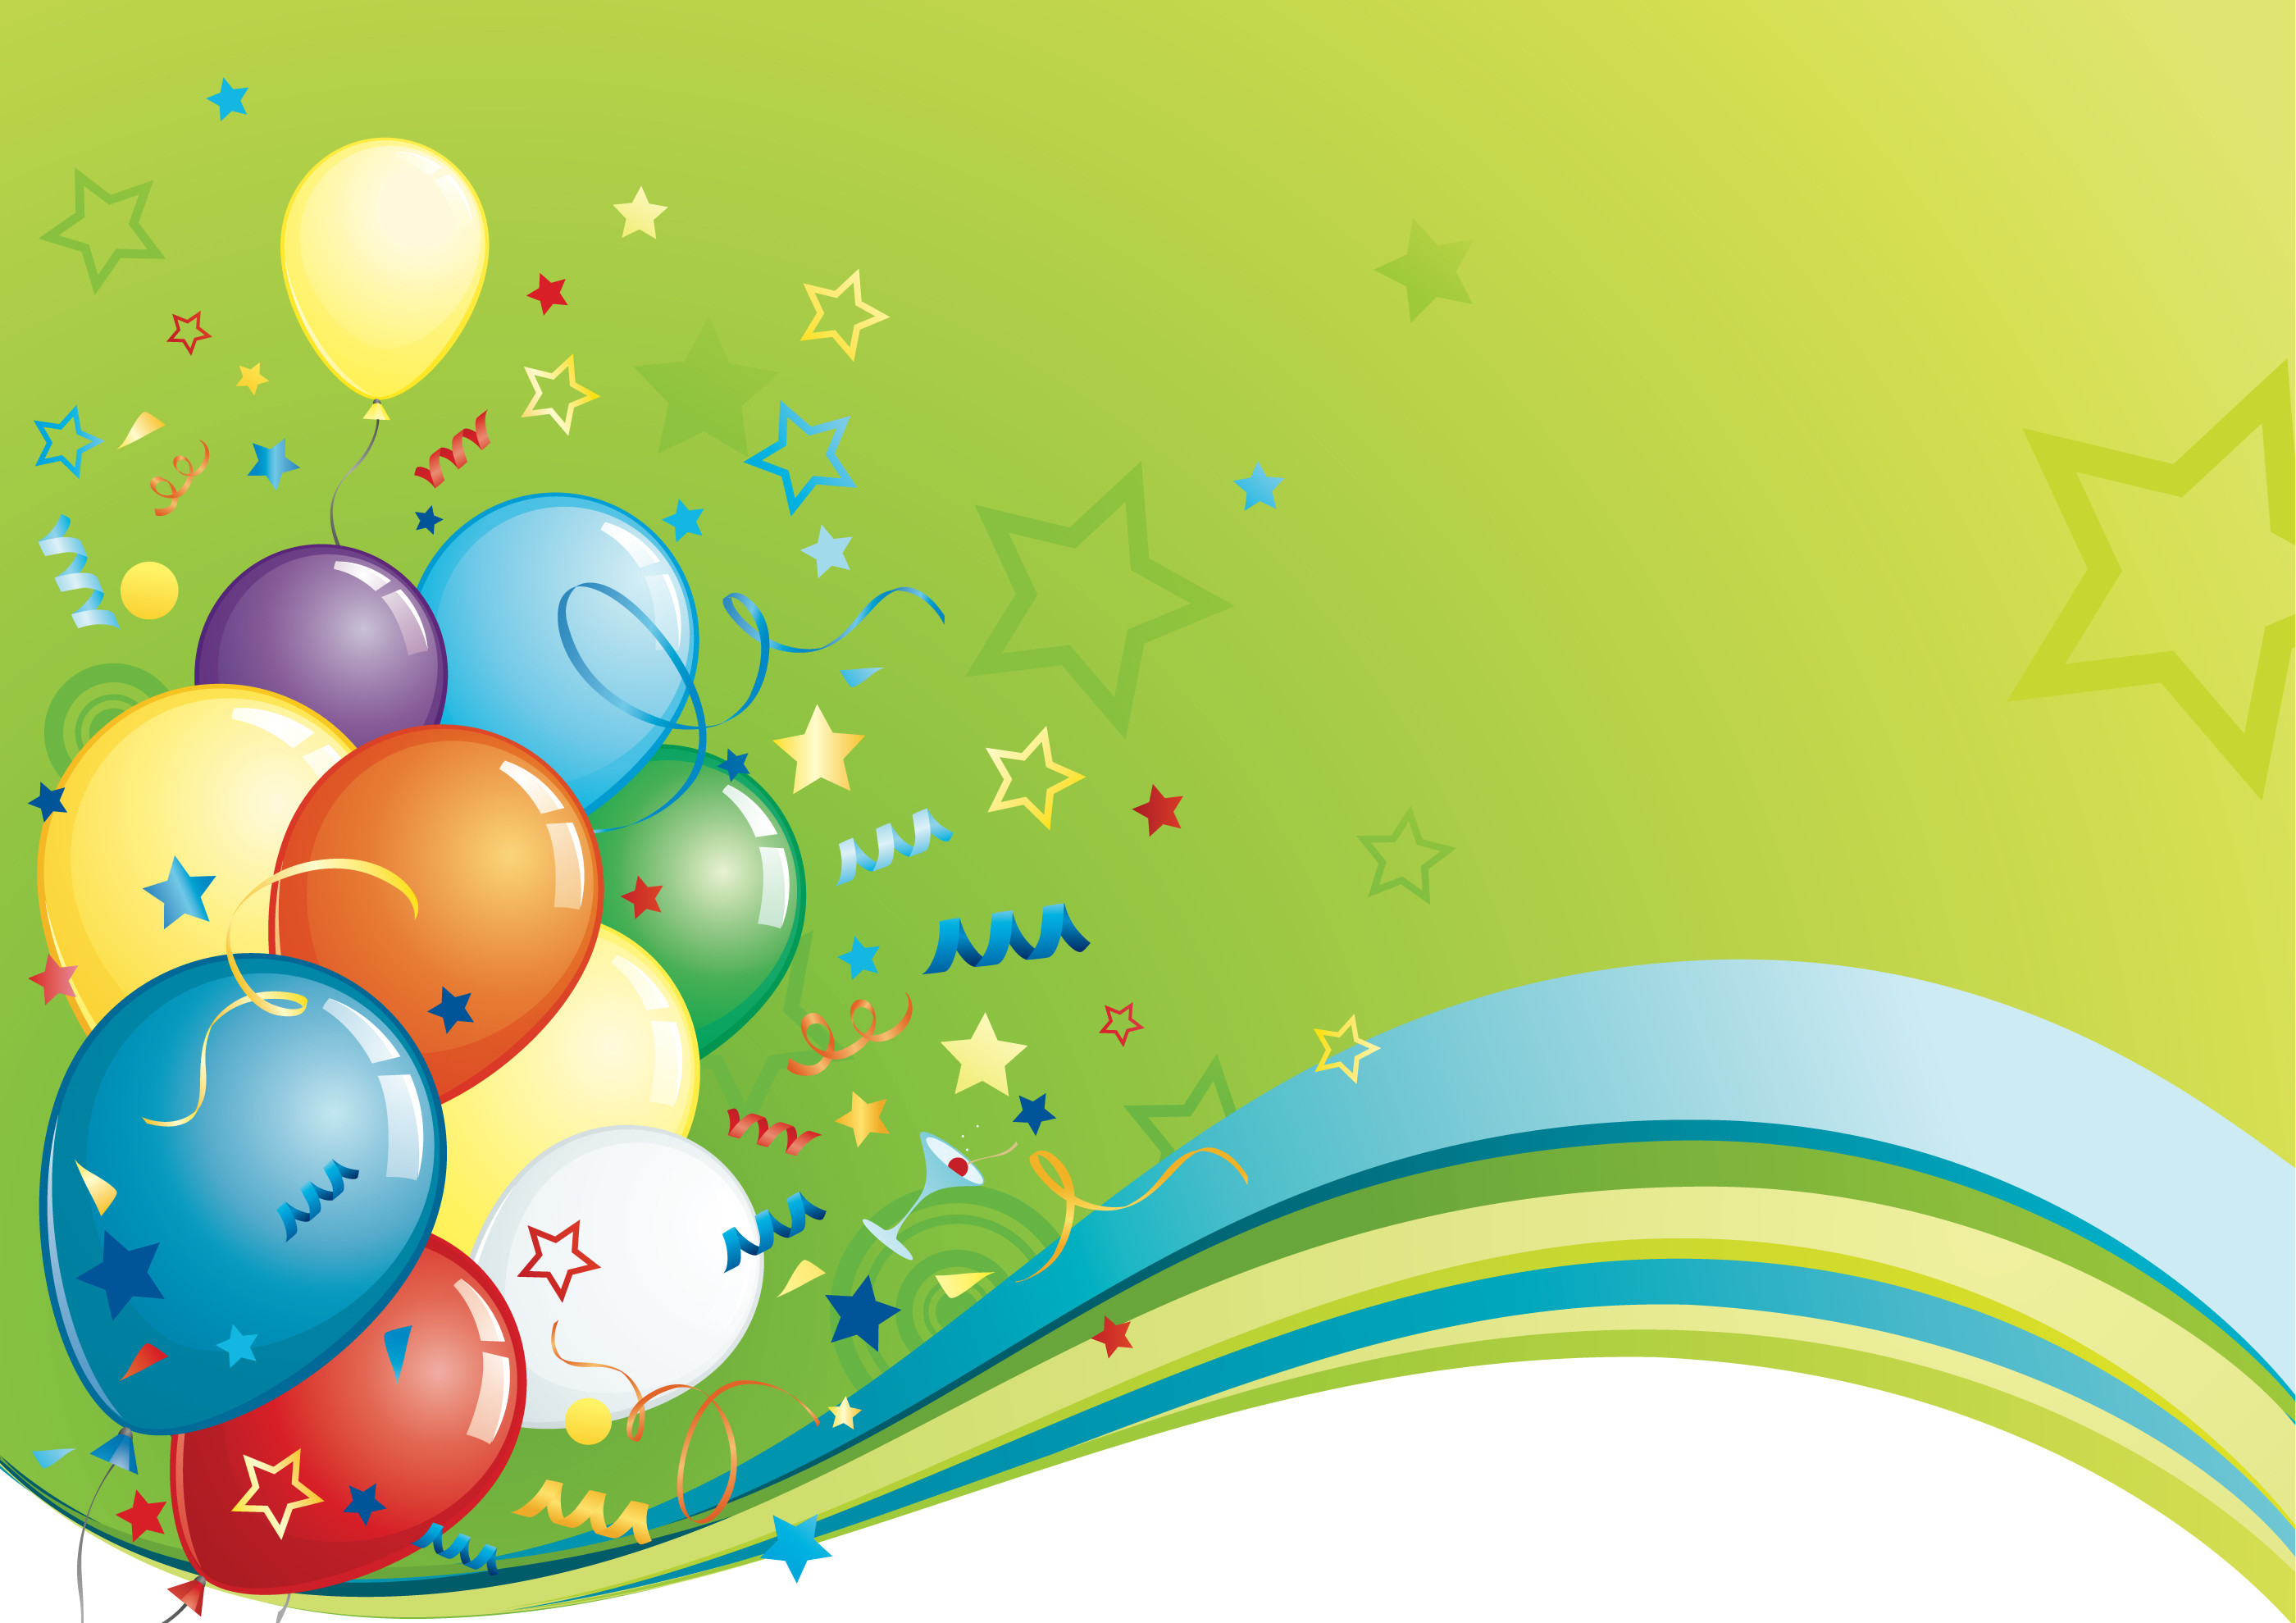 happy birthday background hd images ; 282161